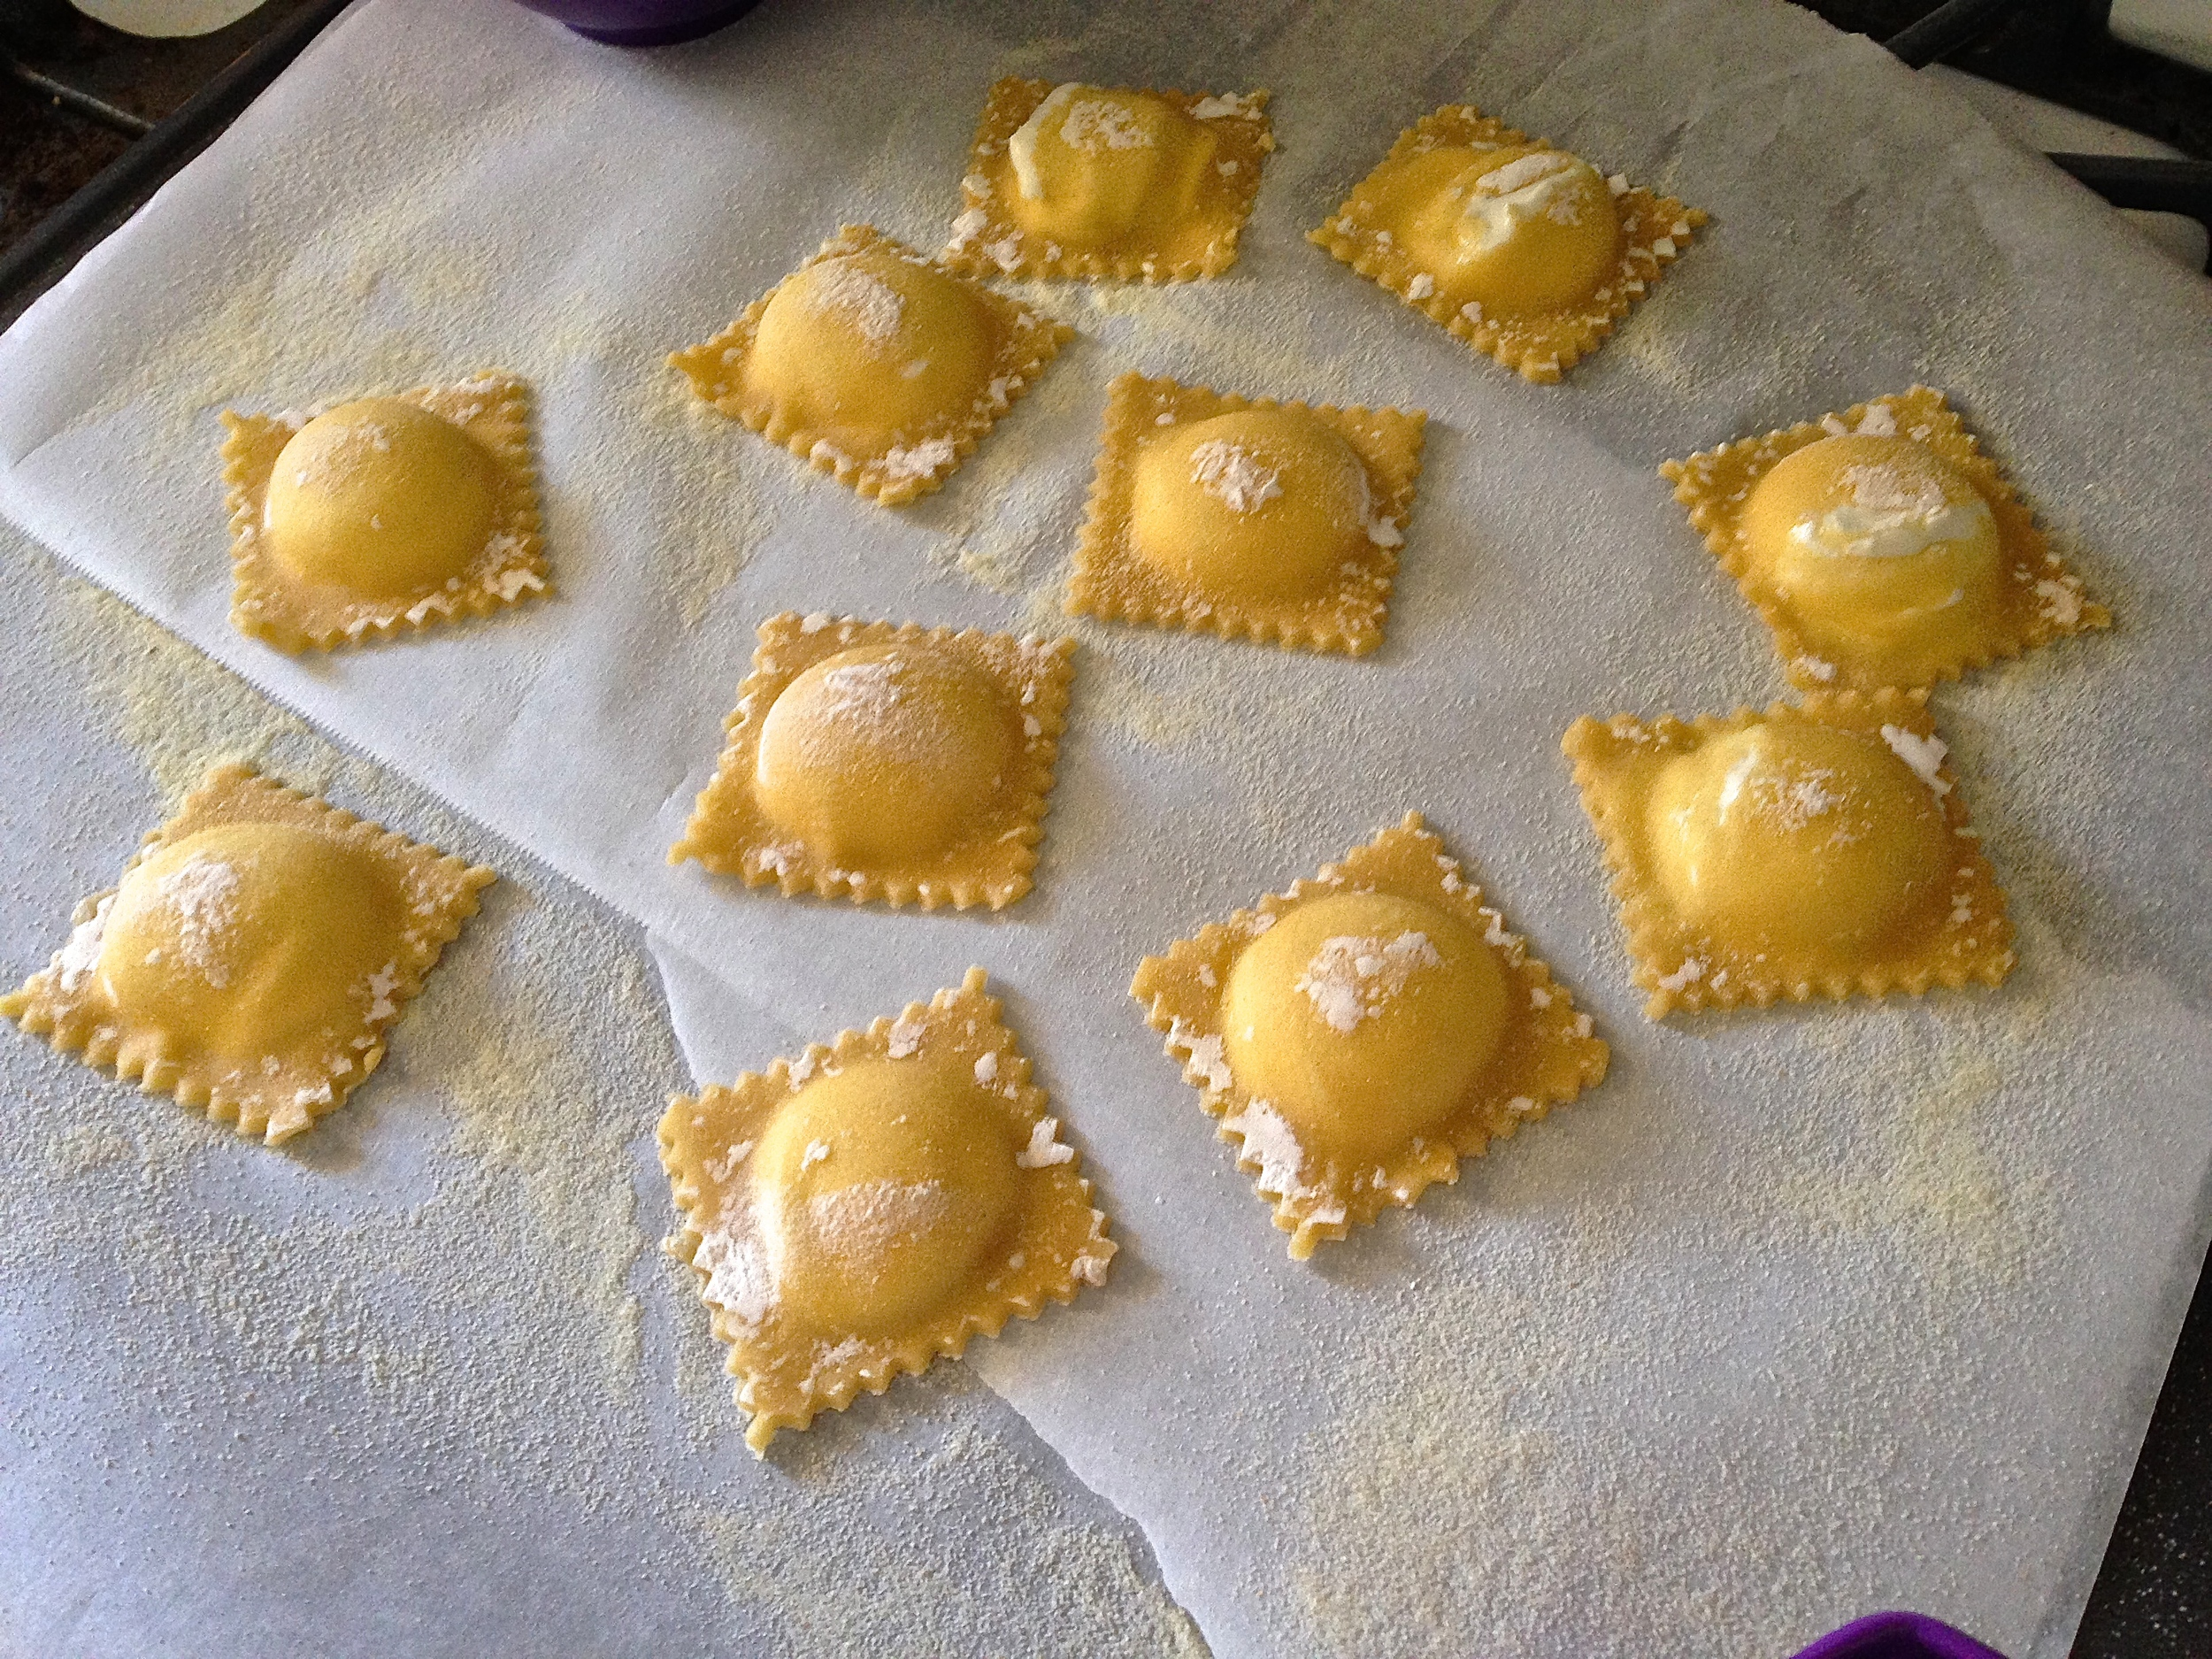 Fresh Goat Cheese Ravioli with Heirloom Tomato Carpaccio in Brown Butter Sage Sauce | Kneading Home